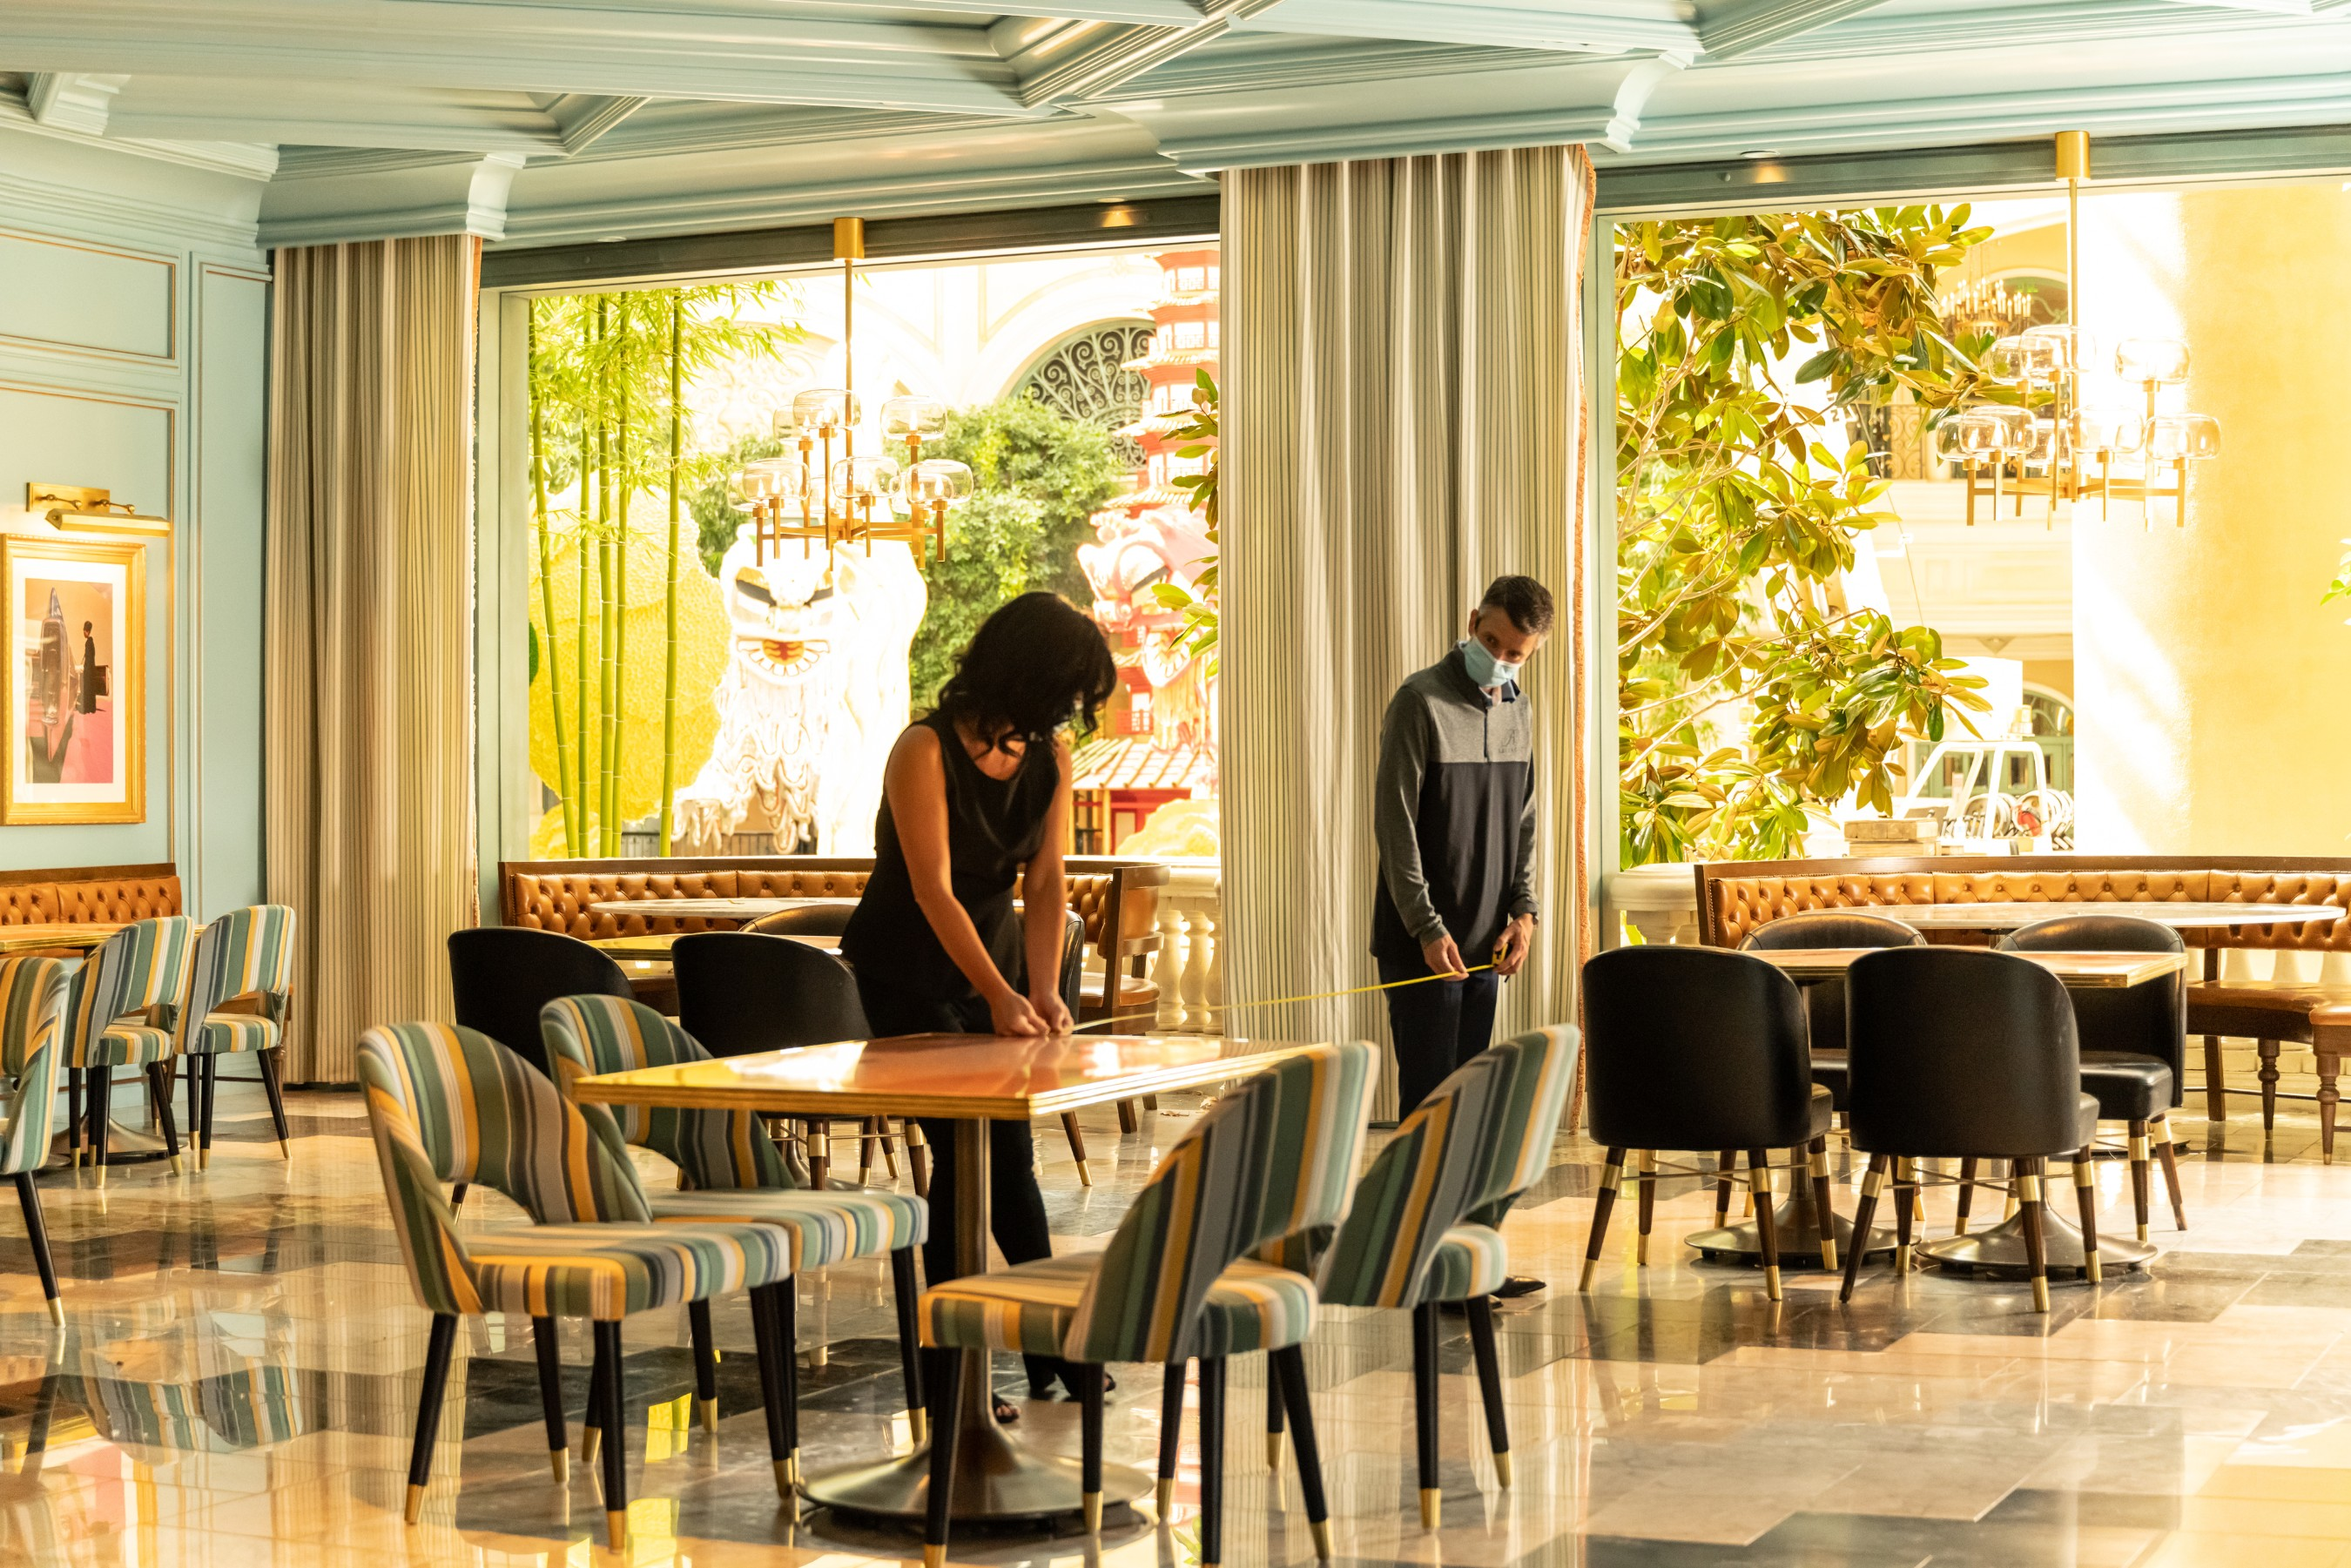 MGM Resorts' employees reconfigure dining spaces at Sadelle's Café in Bellagio to allow for physical distancing between guests.